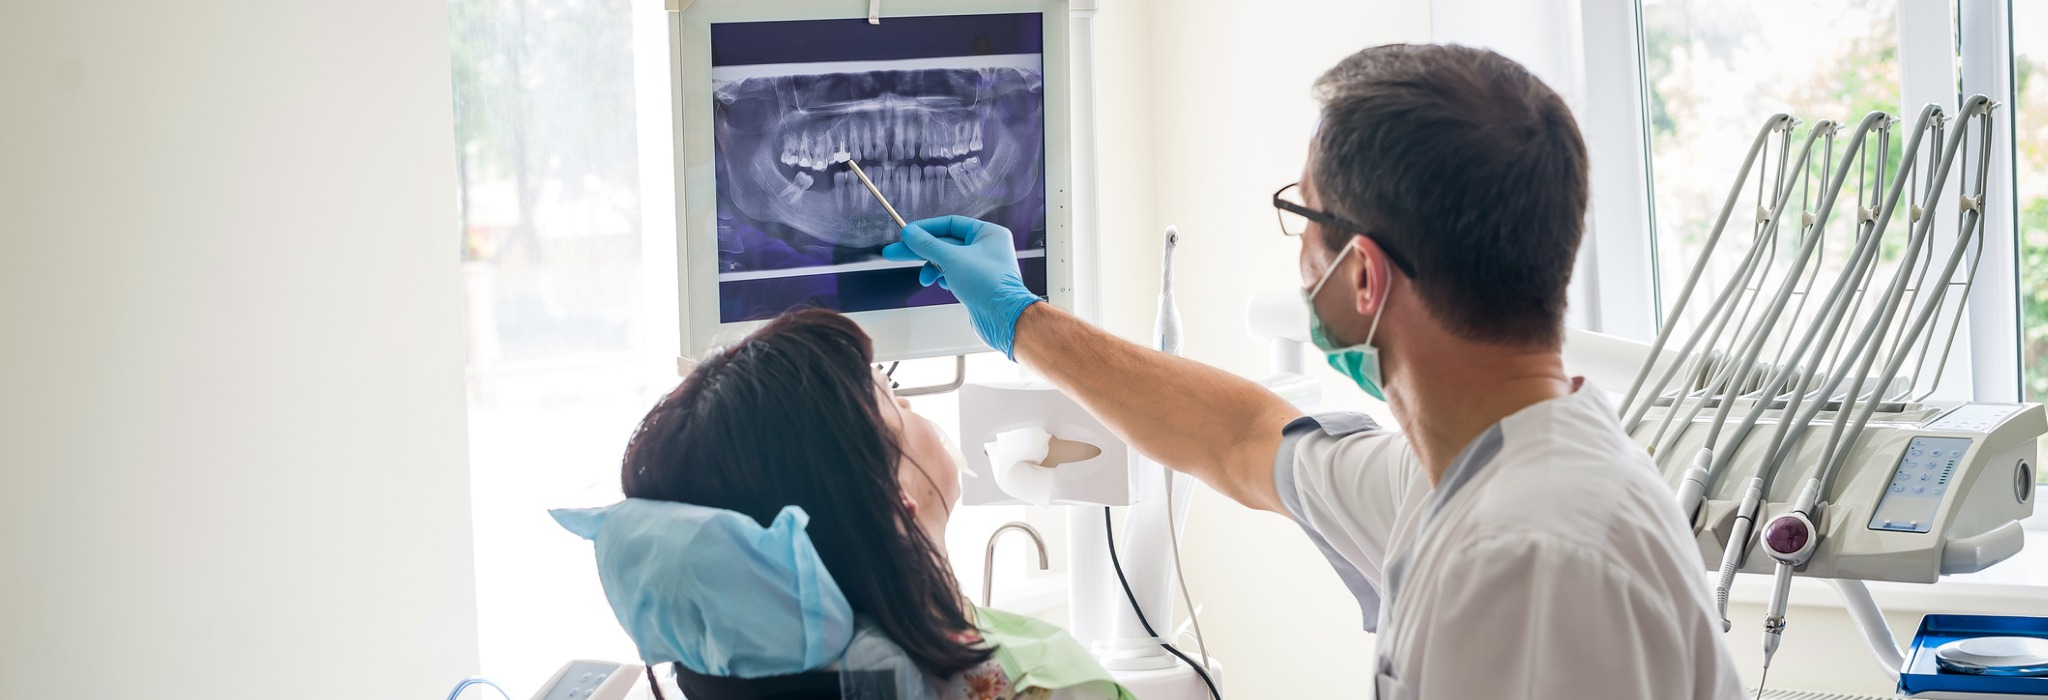 doctor-dentist-showing-patients-teeth-on-xray-picture-2048x700.jpg